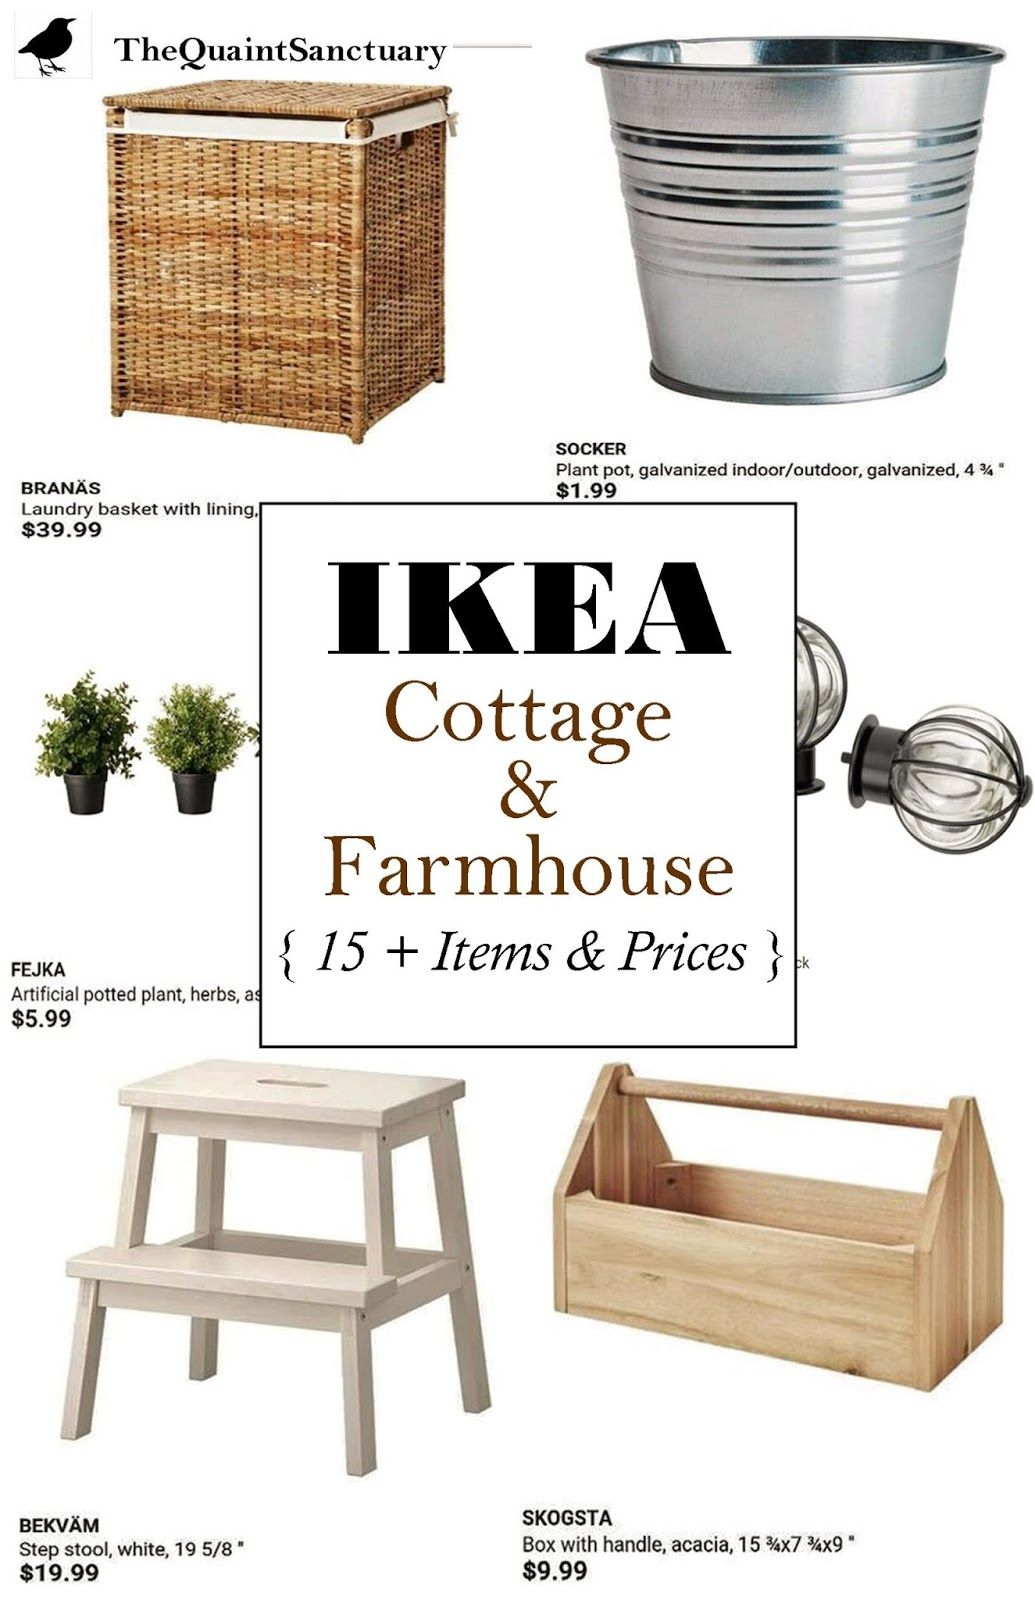 Cheap Farmhouse Sink Ikea The Quaint Sanctuary Ikea Guide To Farmhouse And Cottage